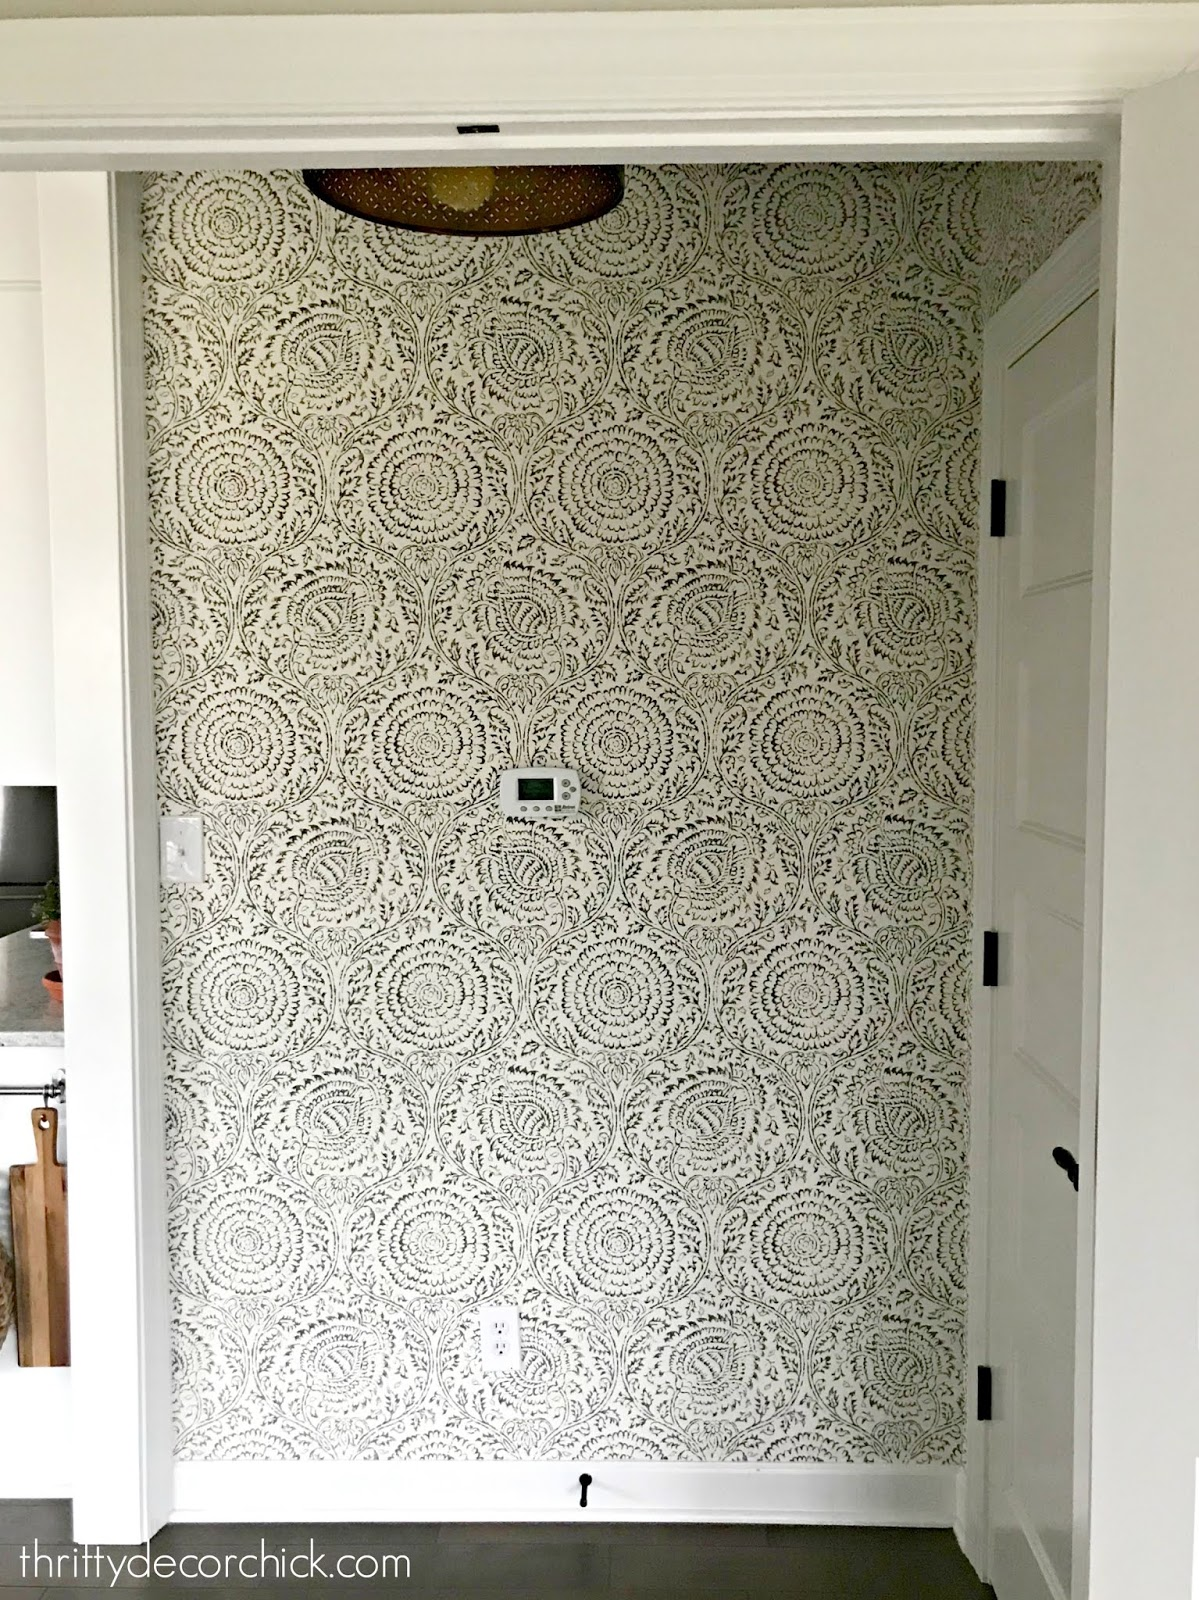 I Hung Wallpaper And Survived From Thrifty Decor Chick